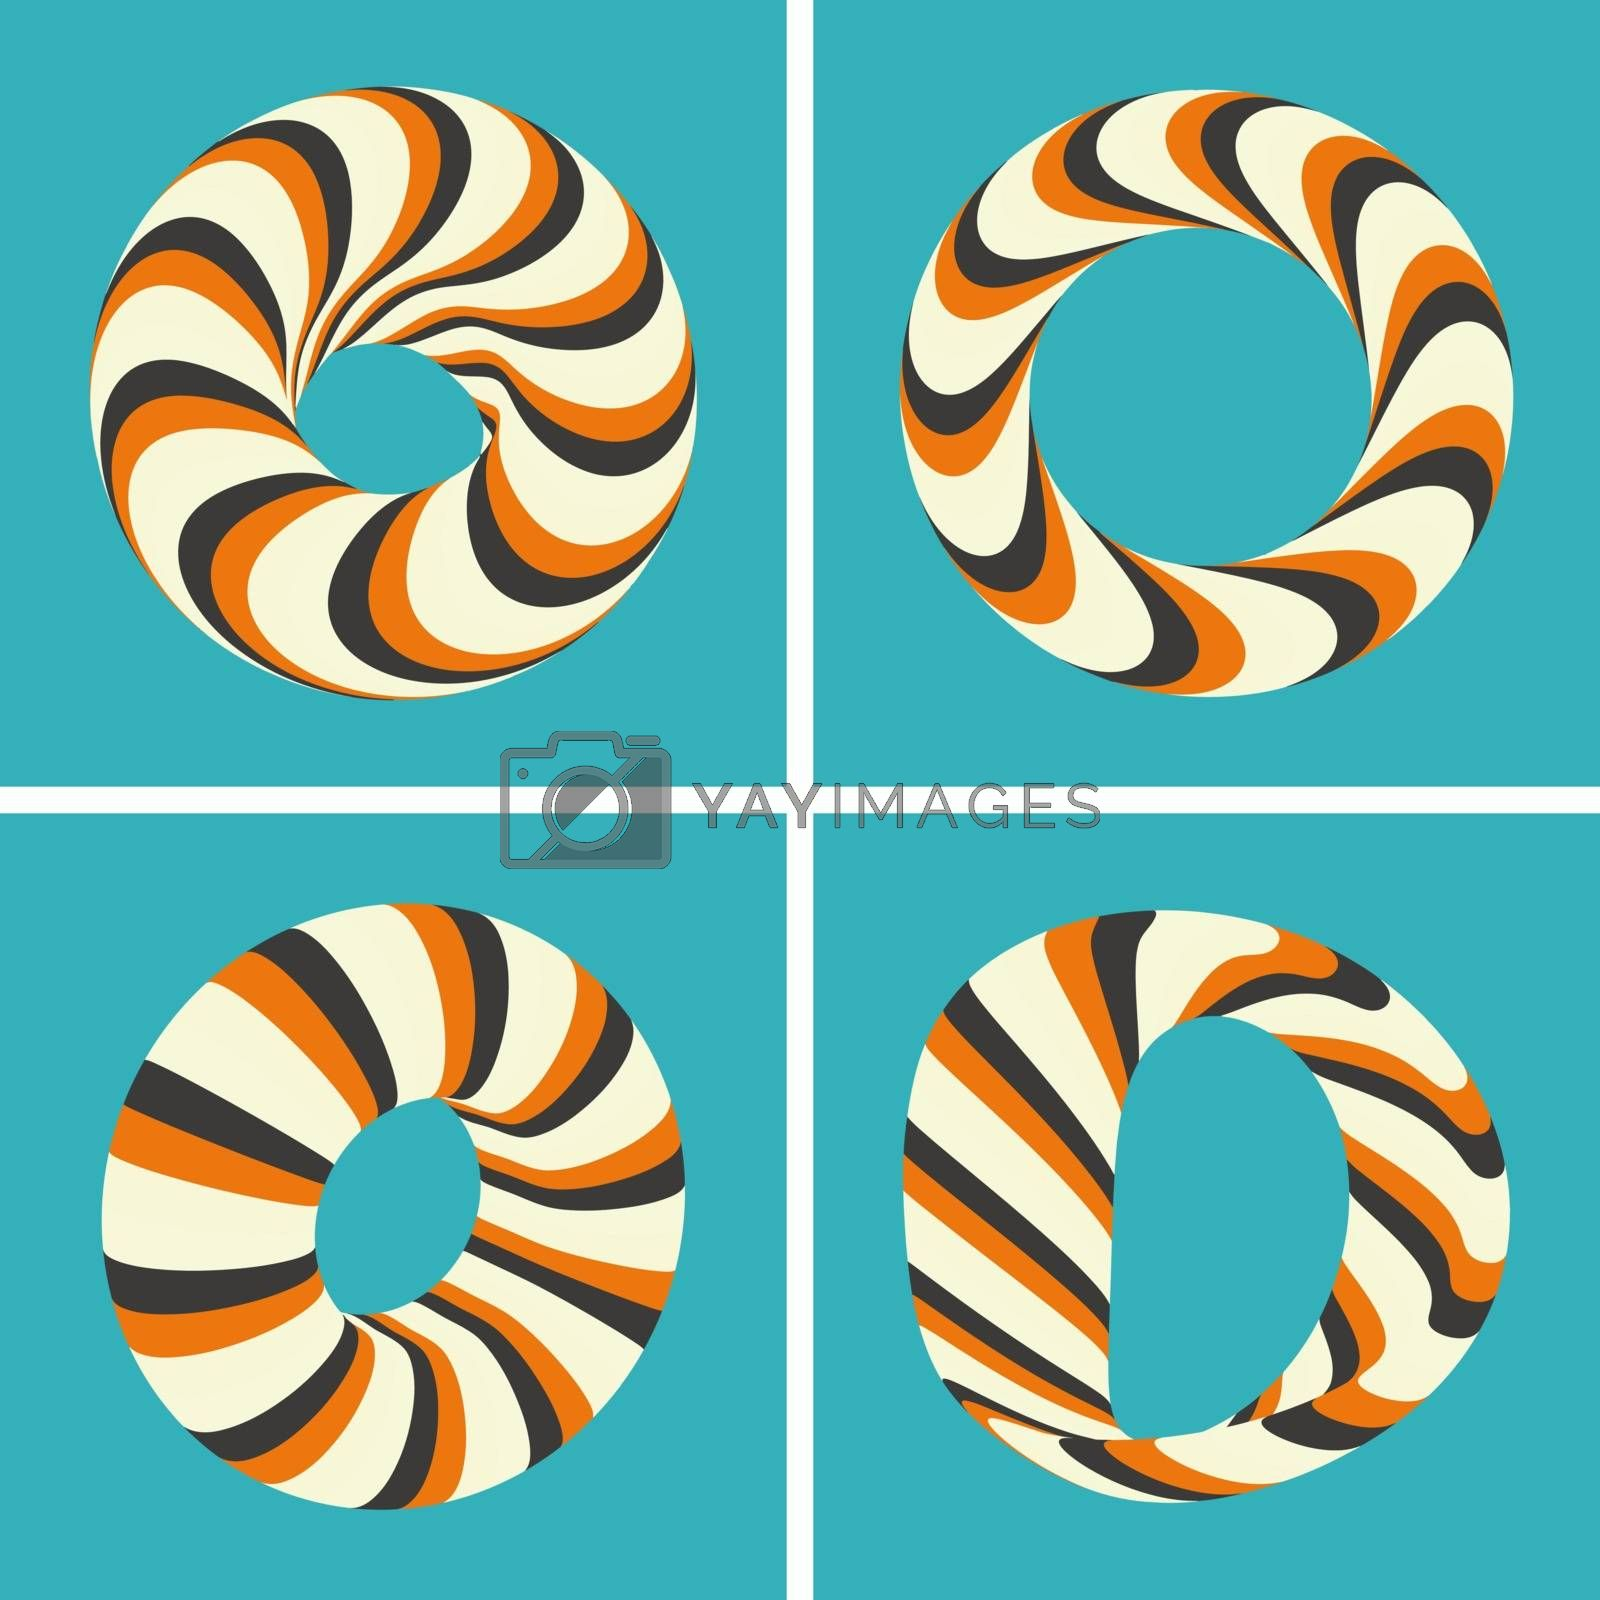 Set of abstract 3d vector icons such emblems. 3d bracelets or rings. Abstract geometric shape. Optical Art.